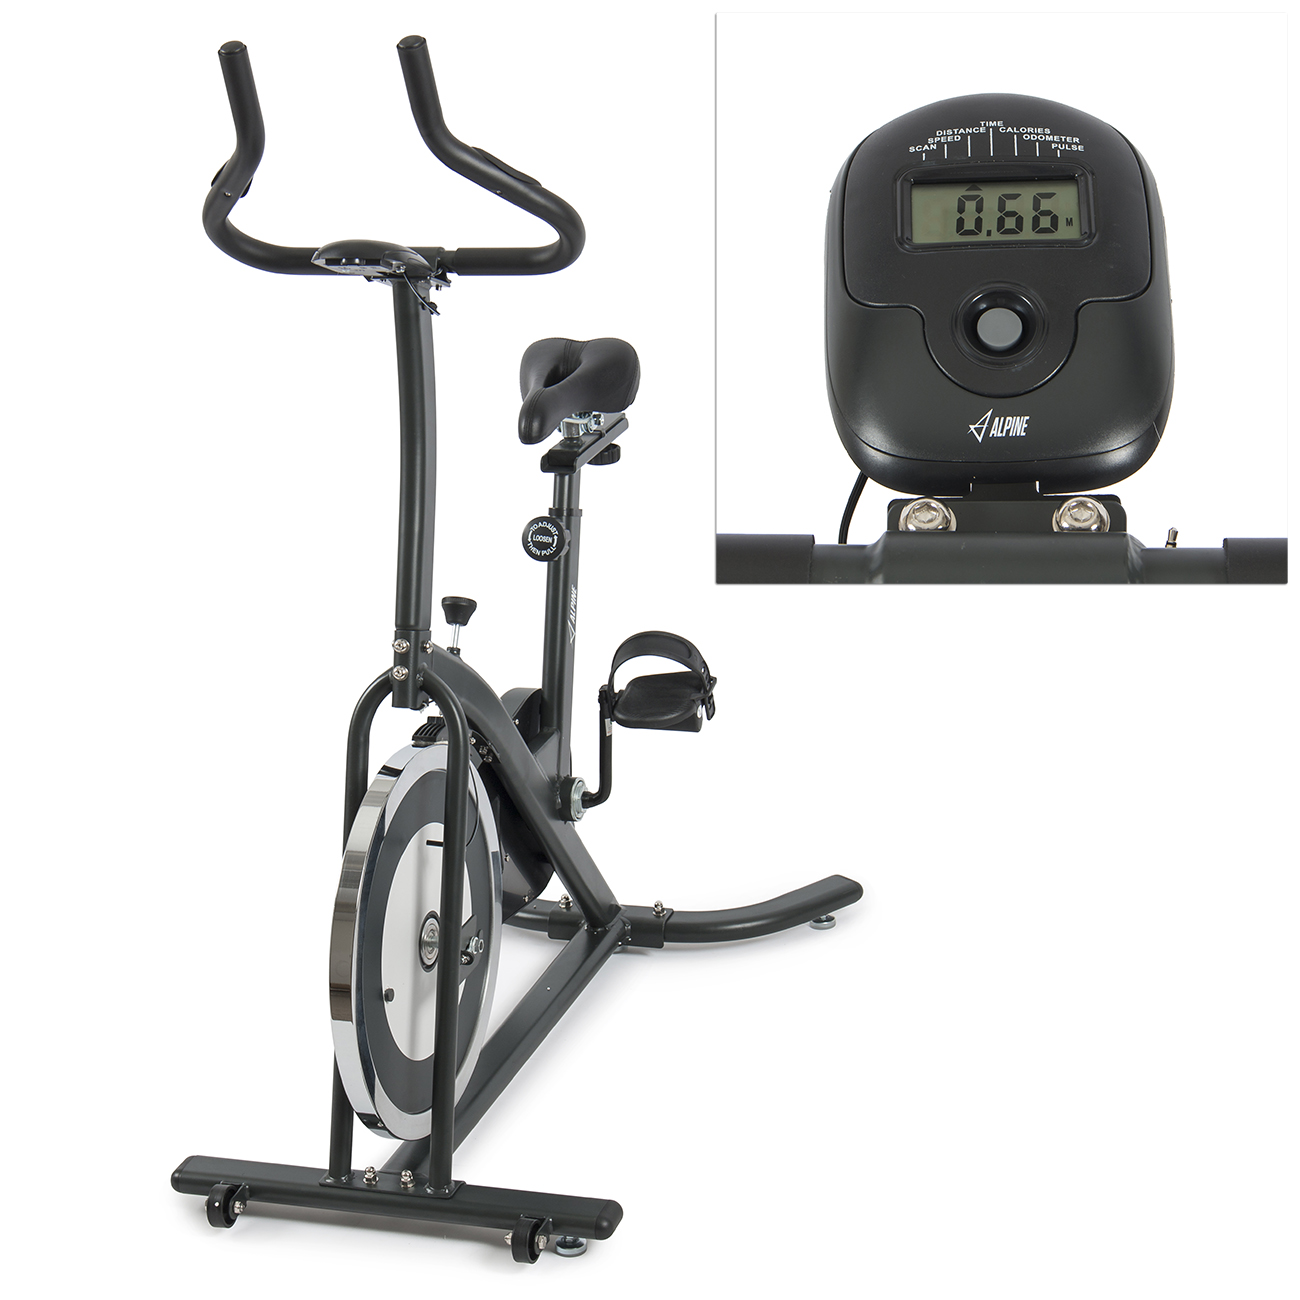 Bicycle cycling fitness bike exerciser cardio workout